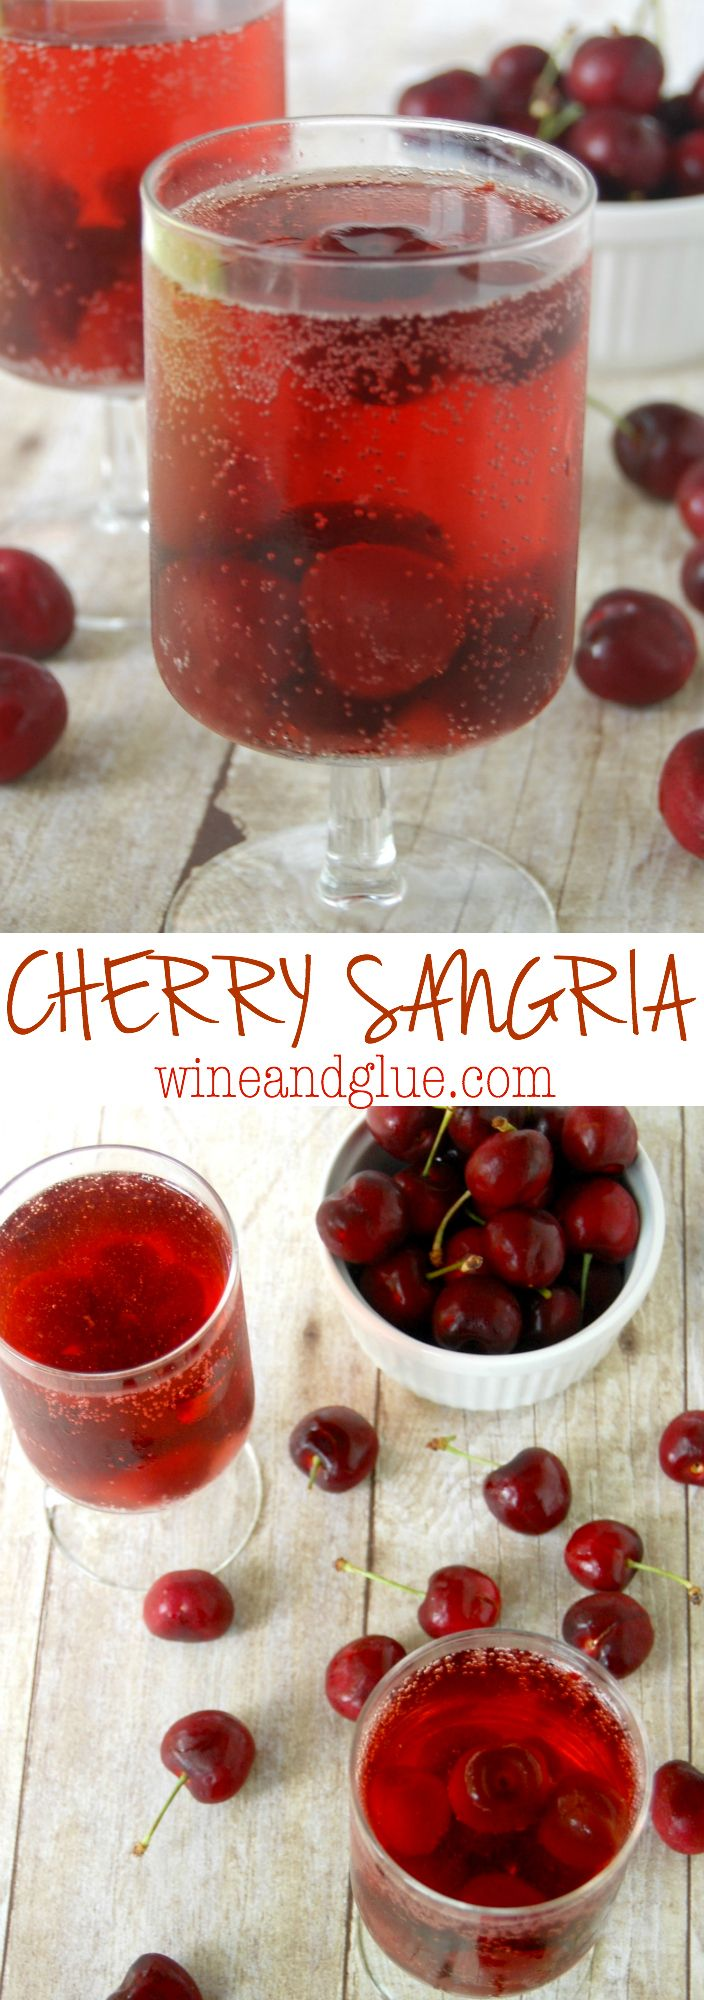 Cherry Sangria | Just FOUR ingredients for this simple but irresistible Cherry Sangria! #sangria #tgif http://livedan330.com/2015/01/23/easy-cherry-sangria/